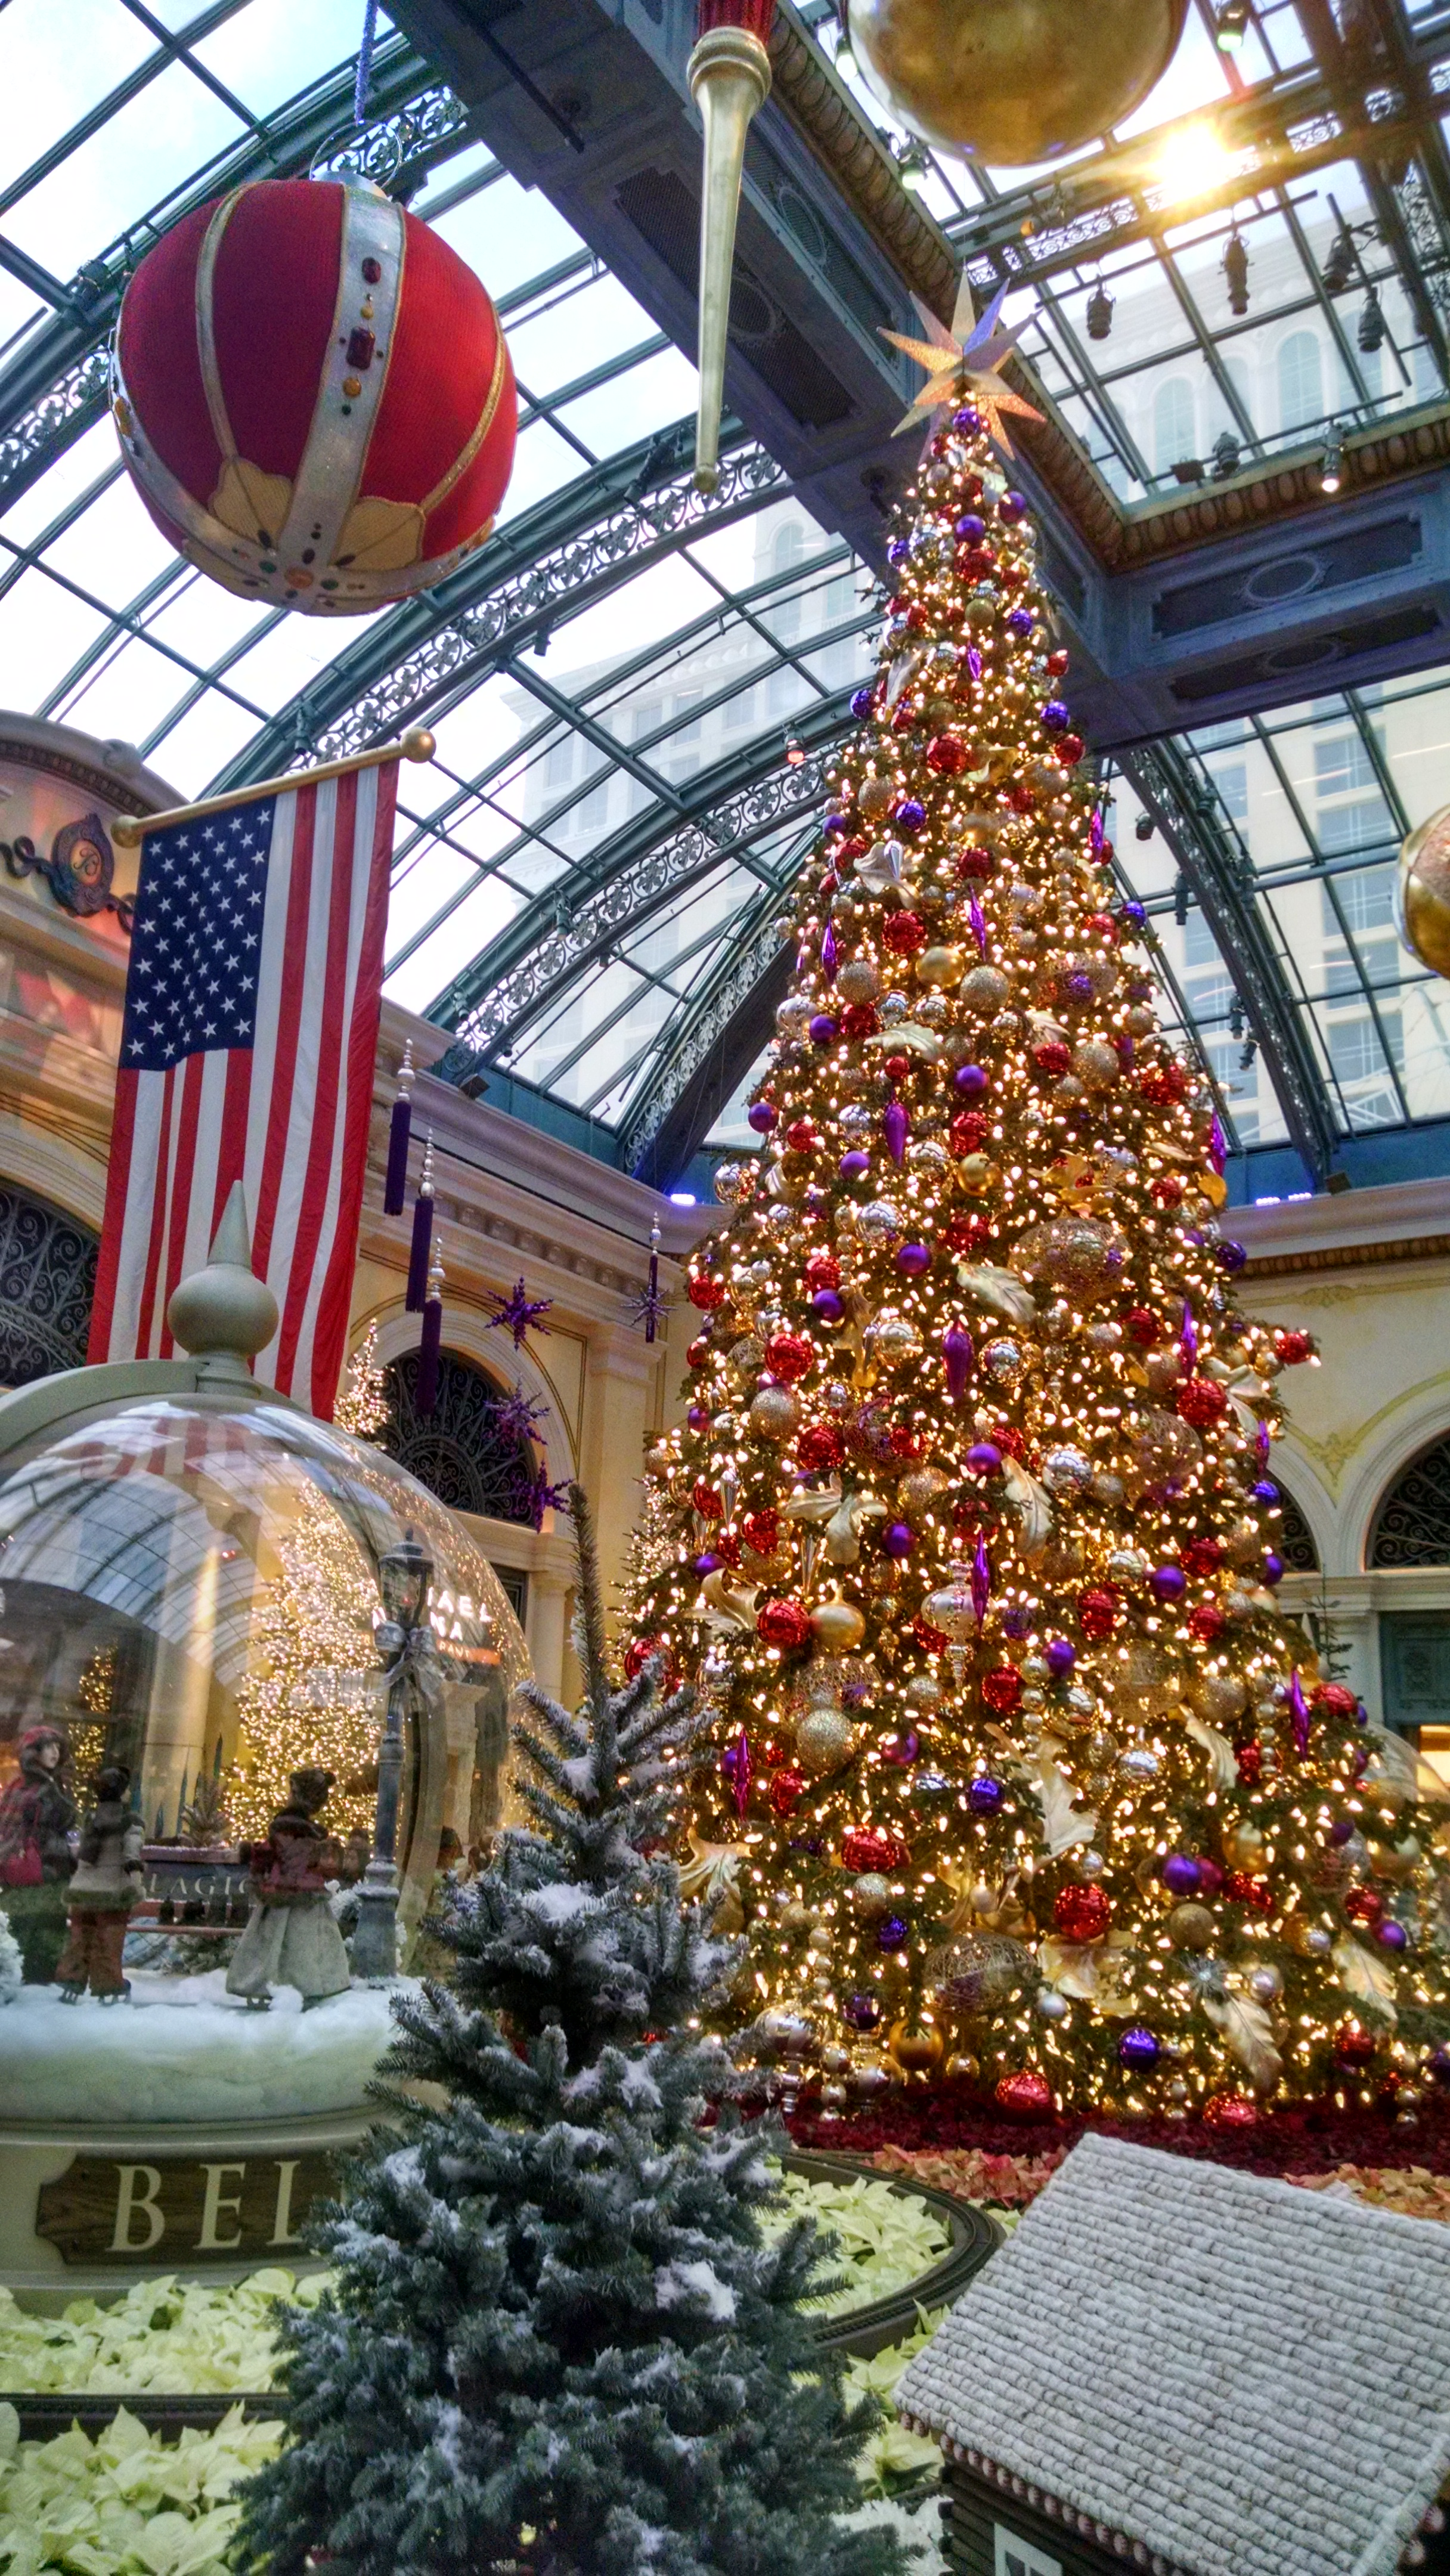 This gigantic Christmas tree and accompanying holiday-themed display is located in the Palazzo.